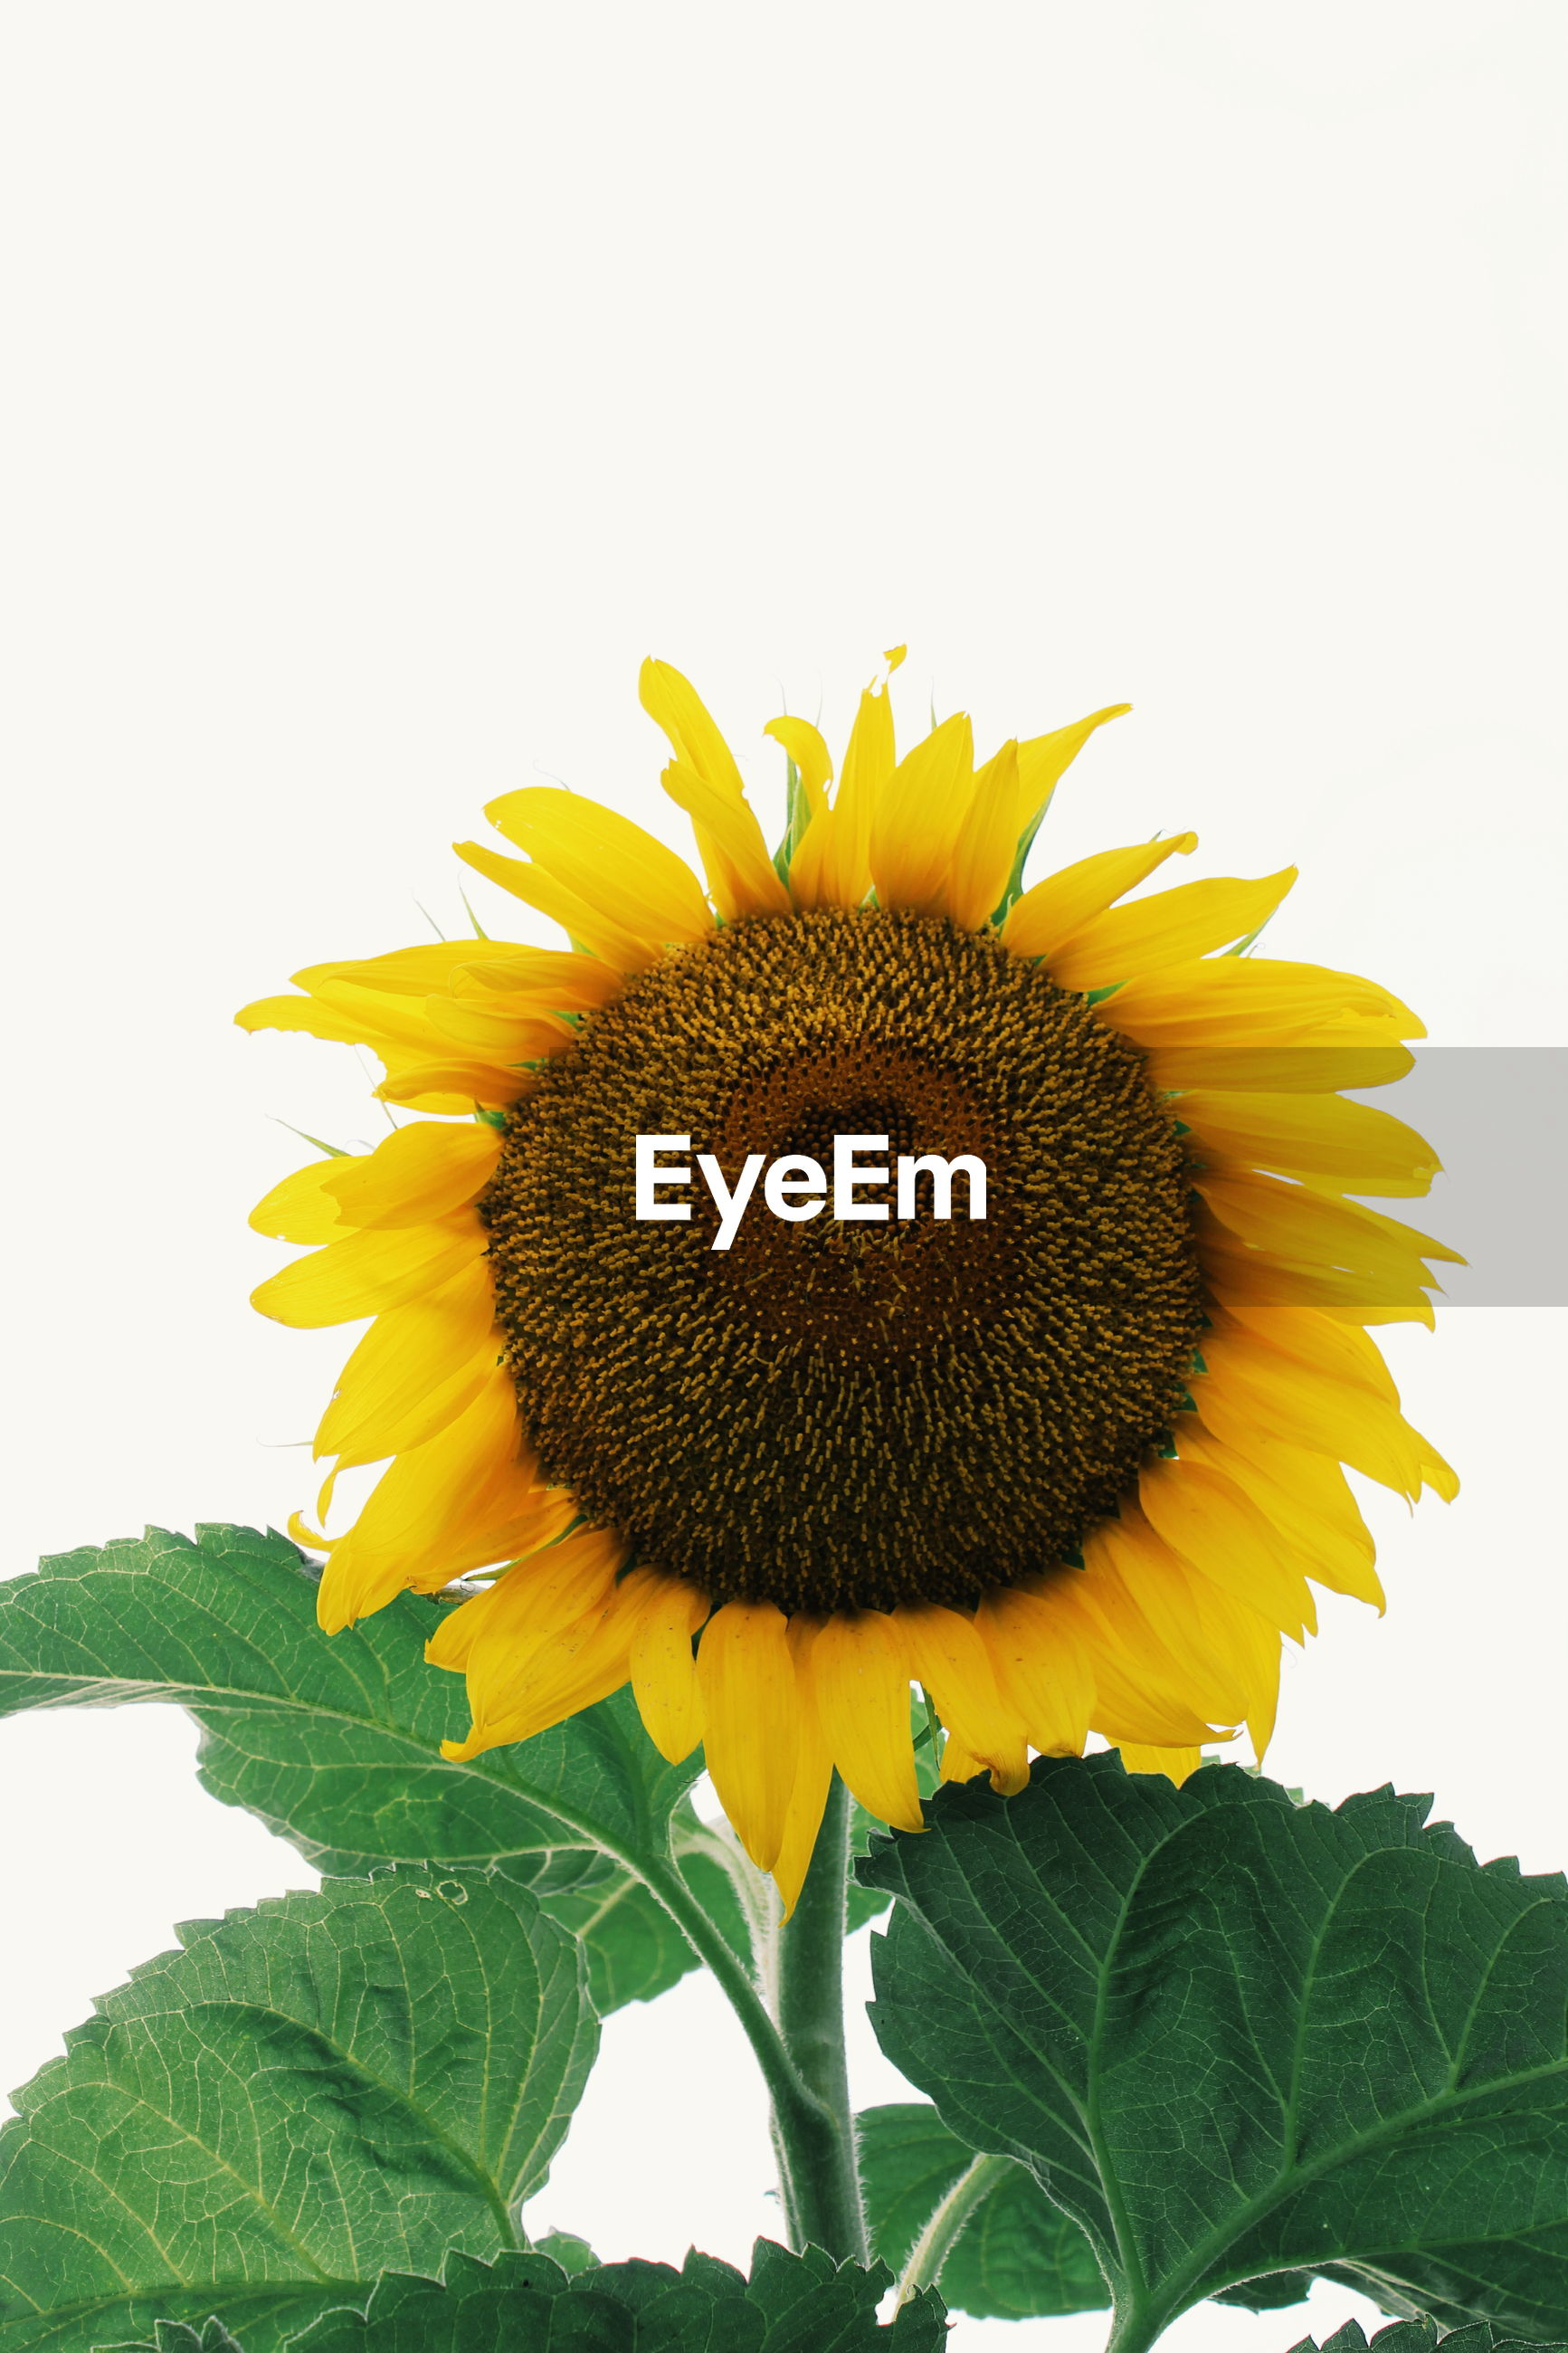 CLOSE-UP OF SUNFLOWER AGAINST YELLOW FLOWERING PLANT